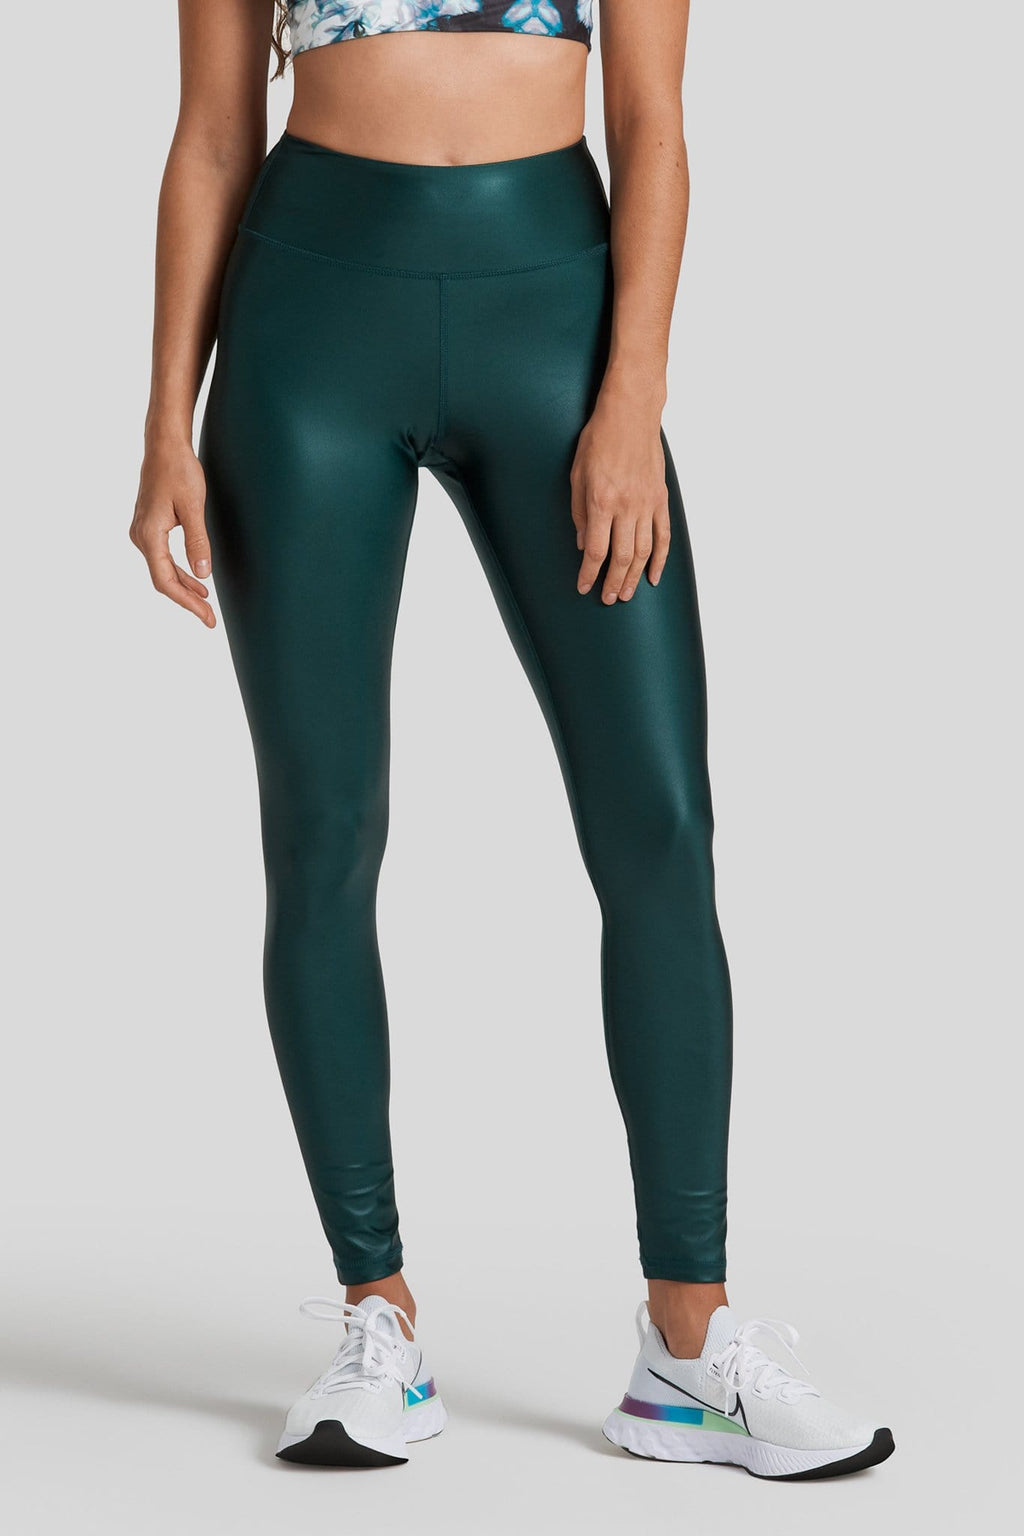 A woman is shown wearing dark green liquid leggings